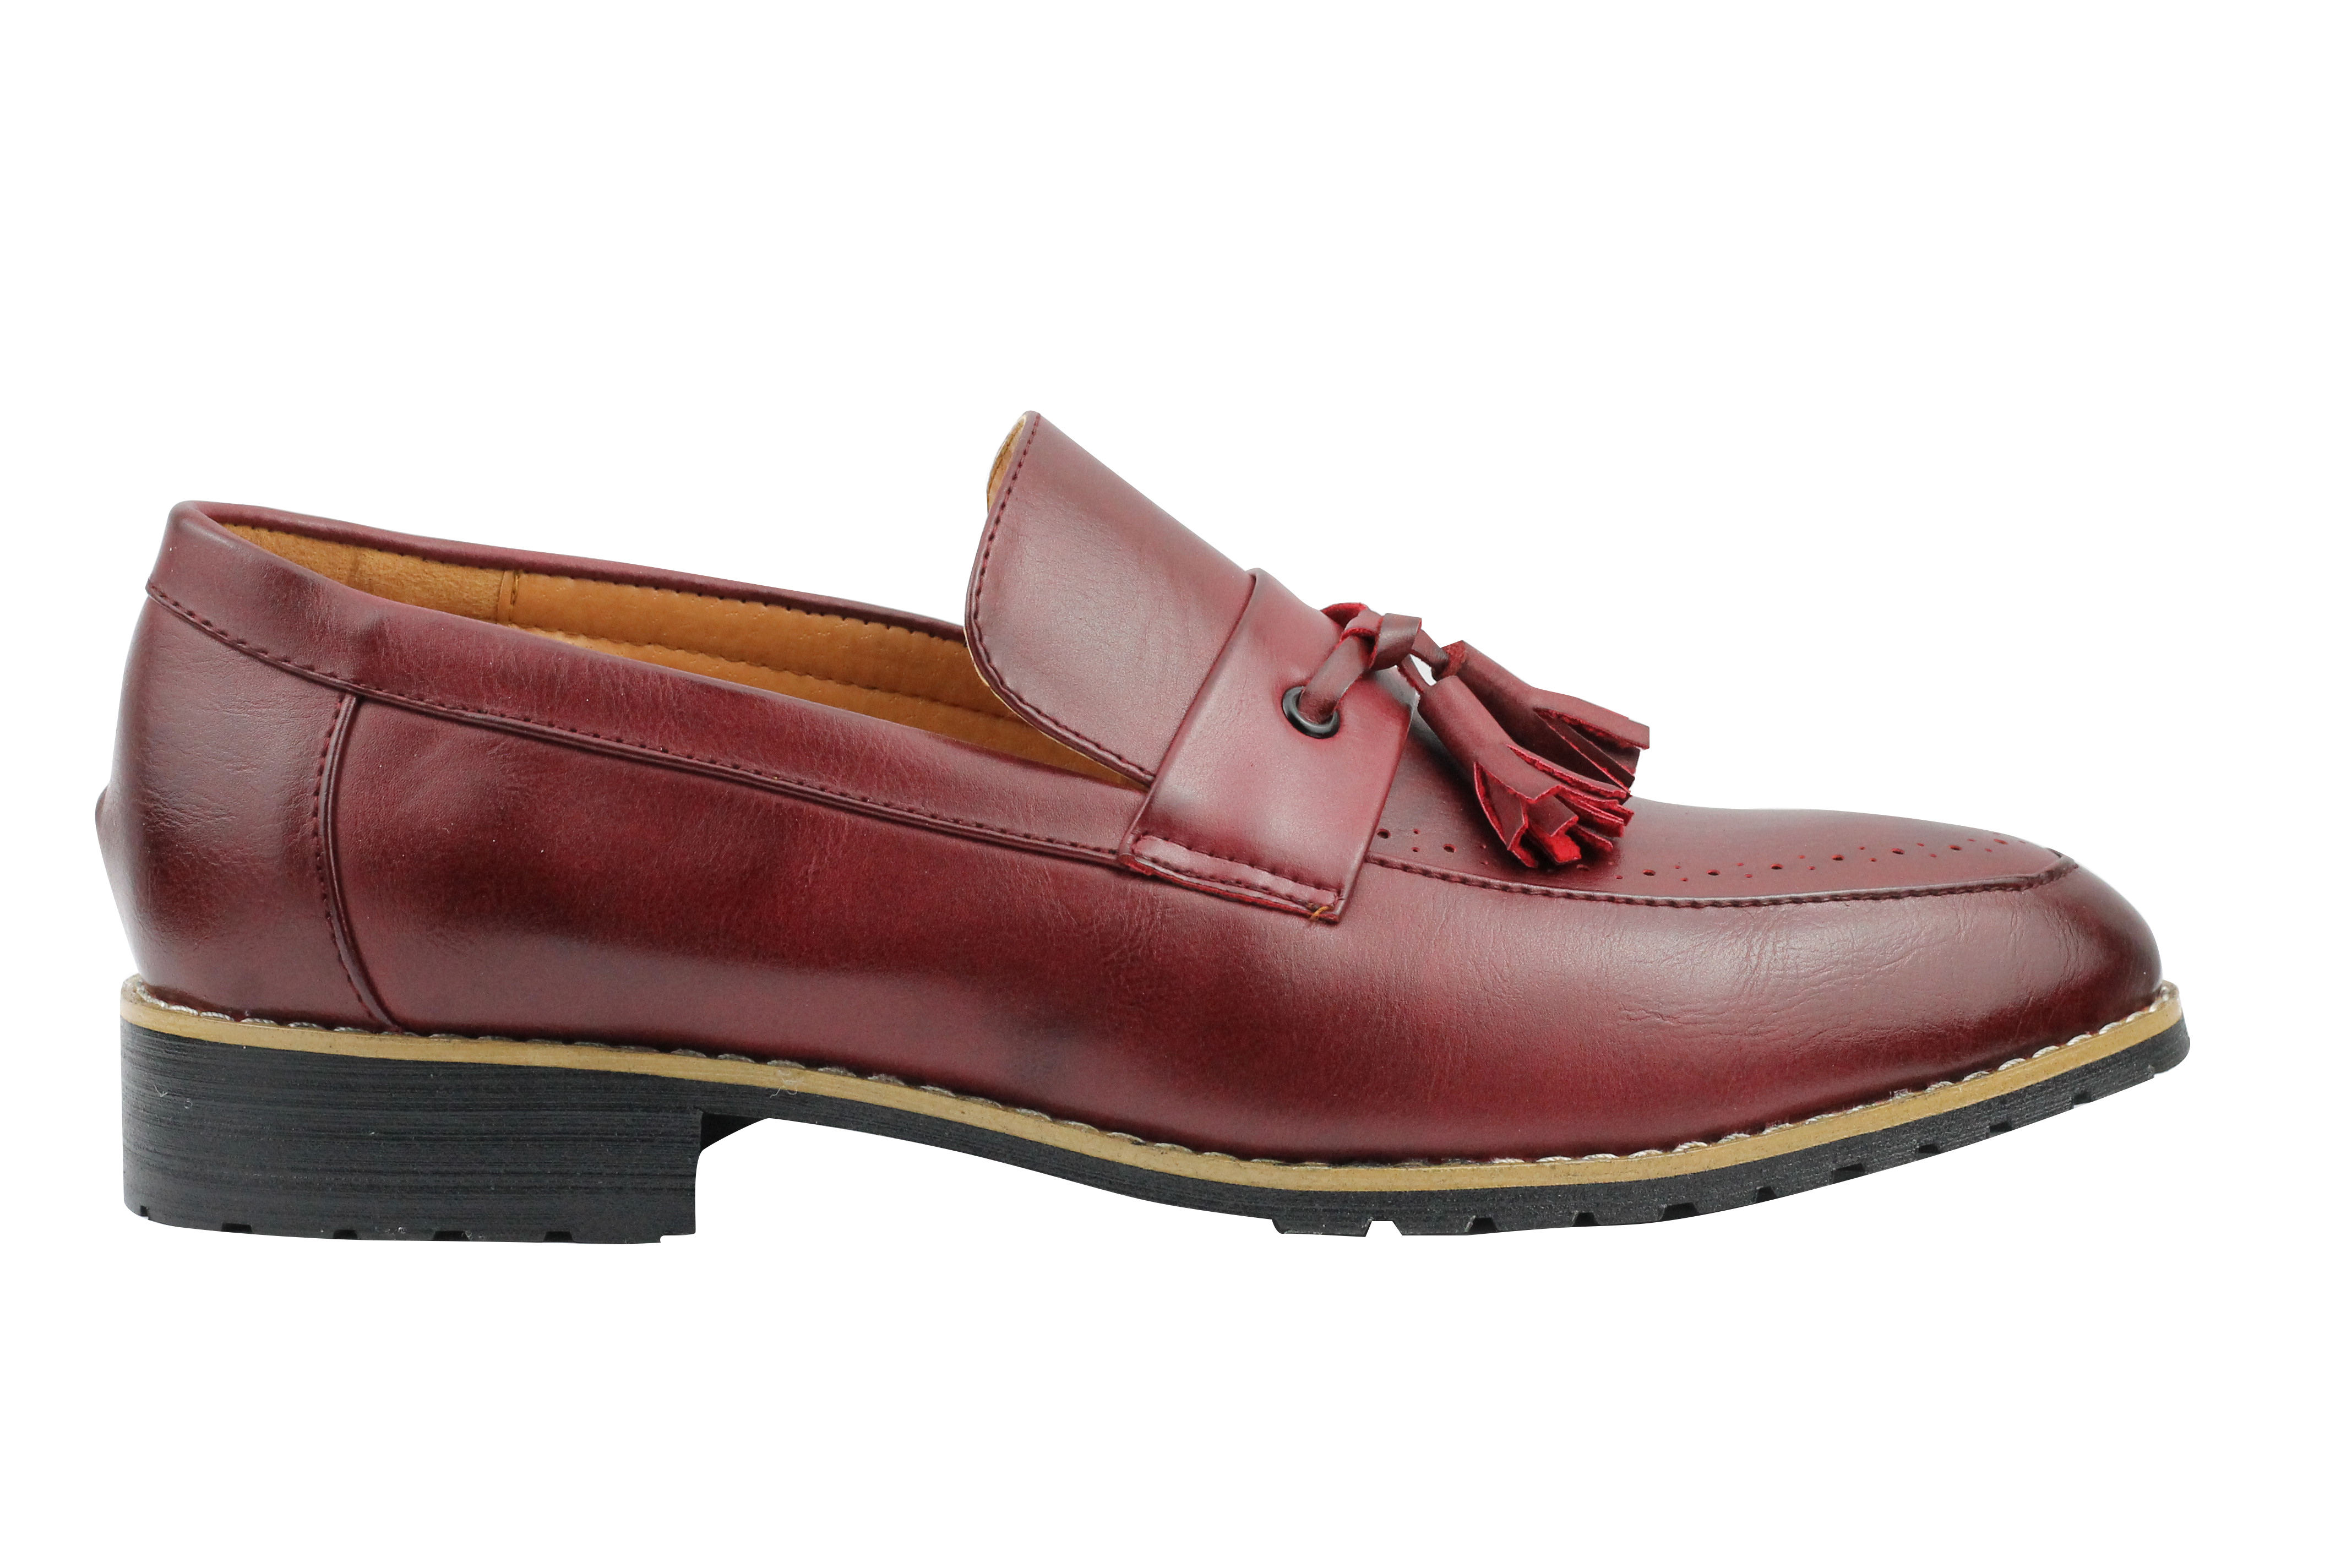 Mens-Leather-Lined-Maroon-Black-Tassel-Loafer-Smart-Casual-Slip-on-Driving-Shoes thumbnail 9